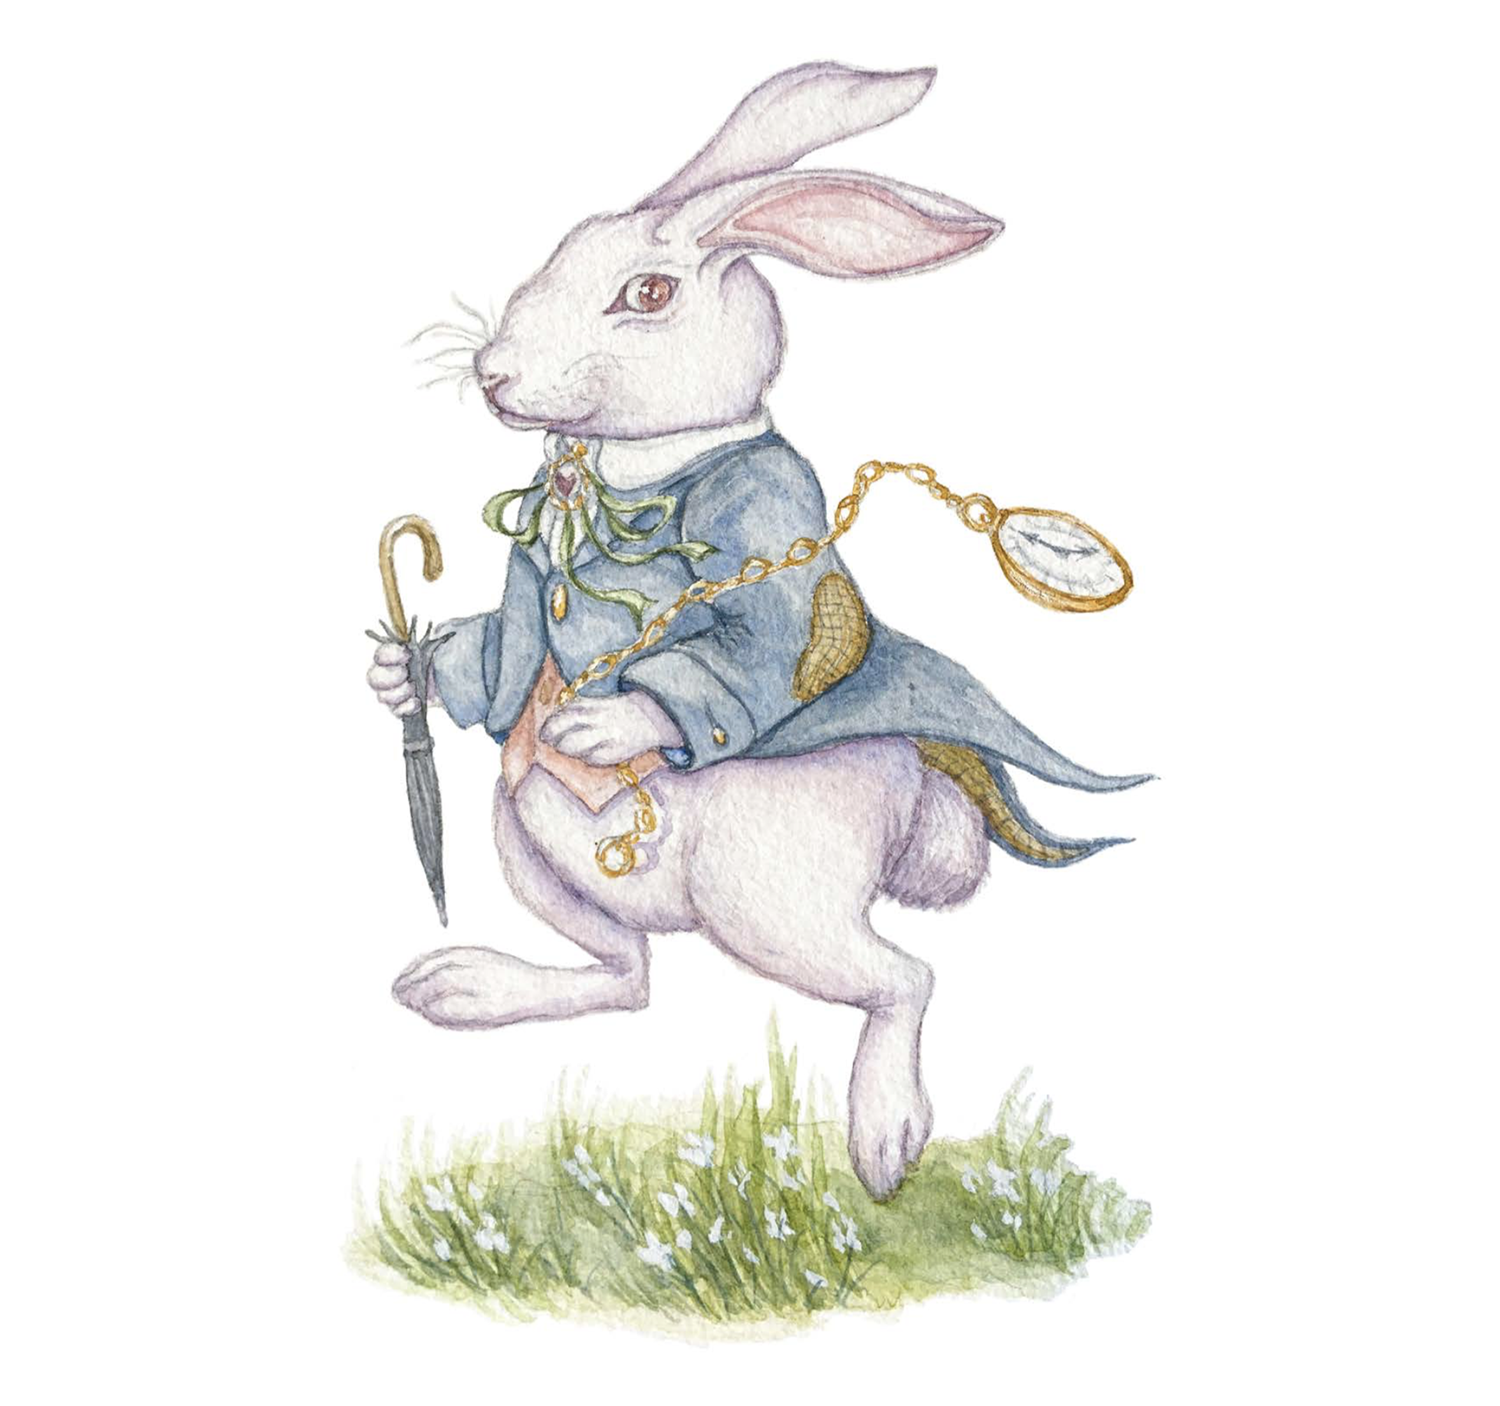 A bunny holding an umbrella and a pocket watch.